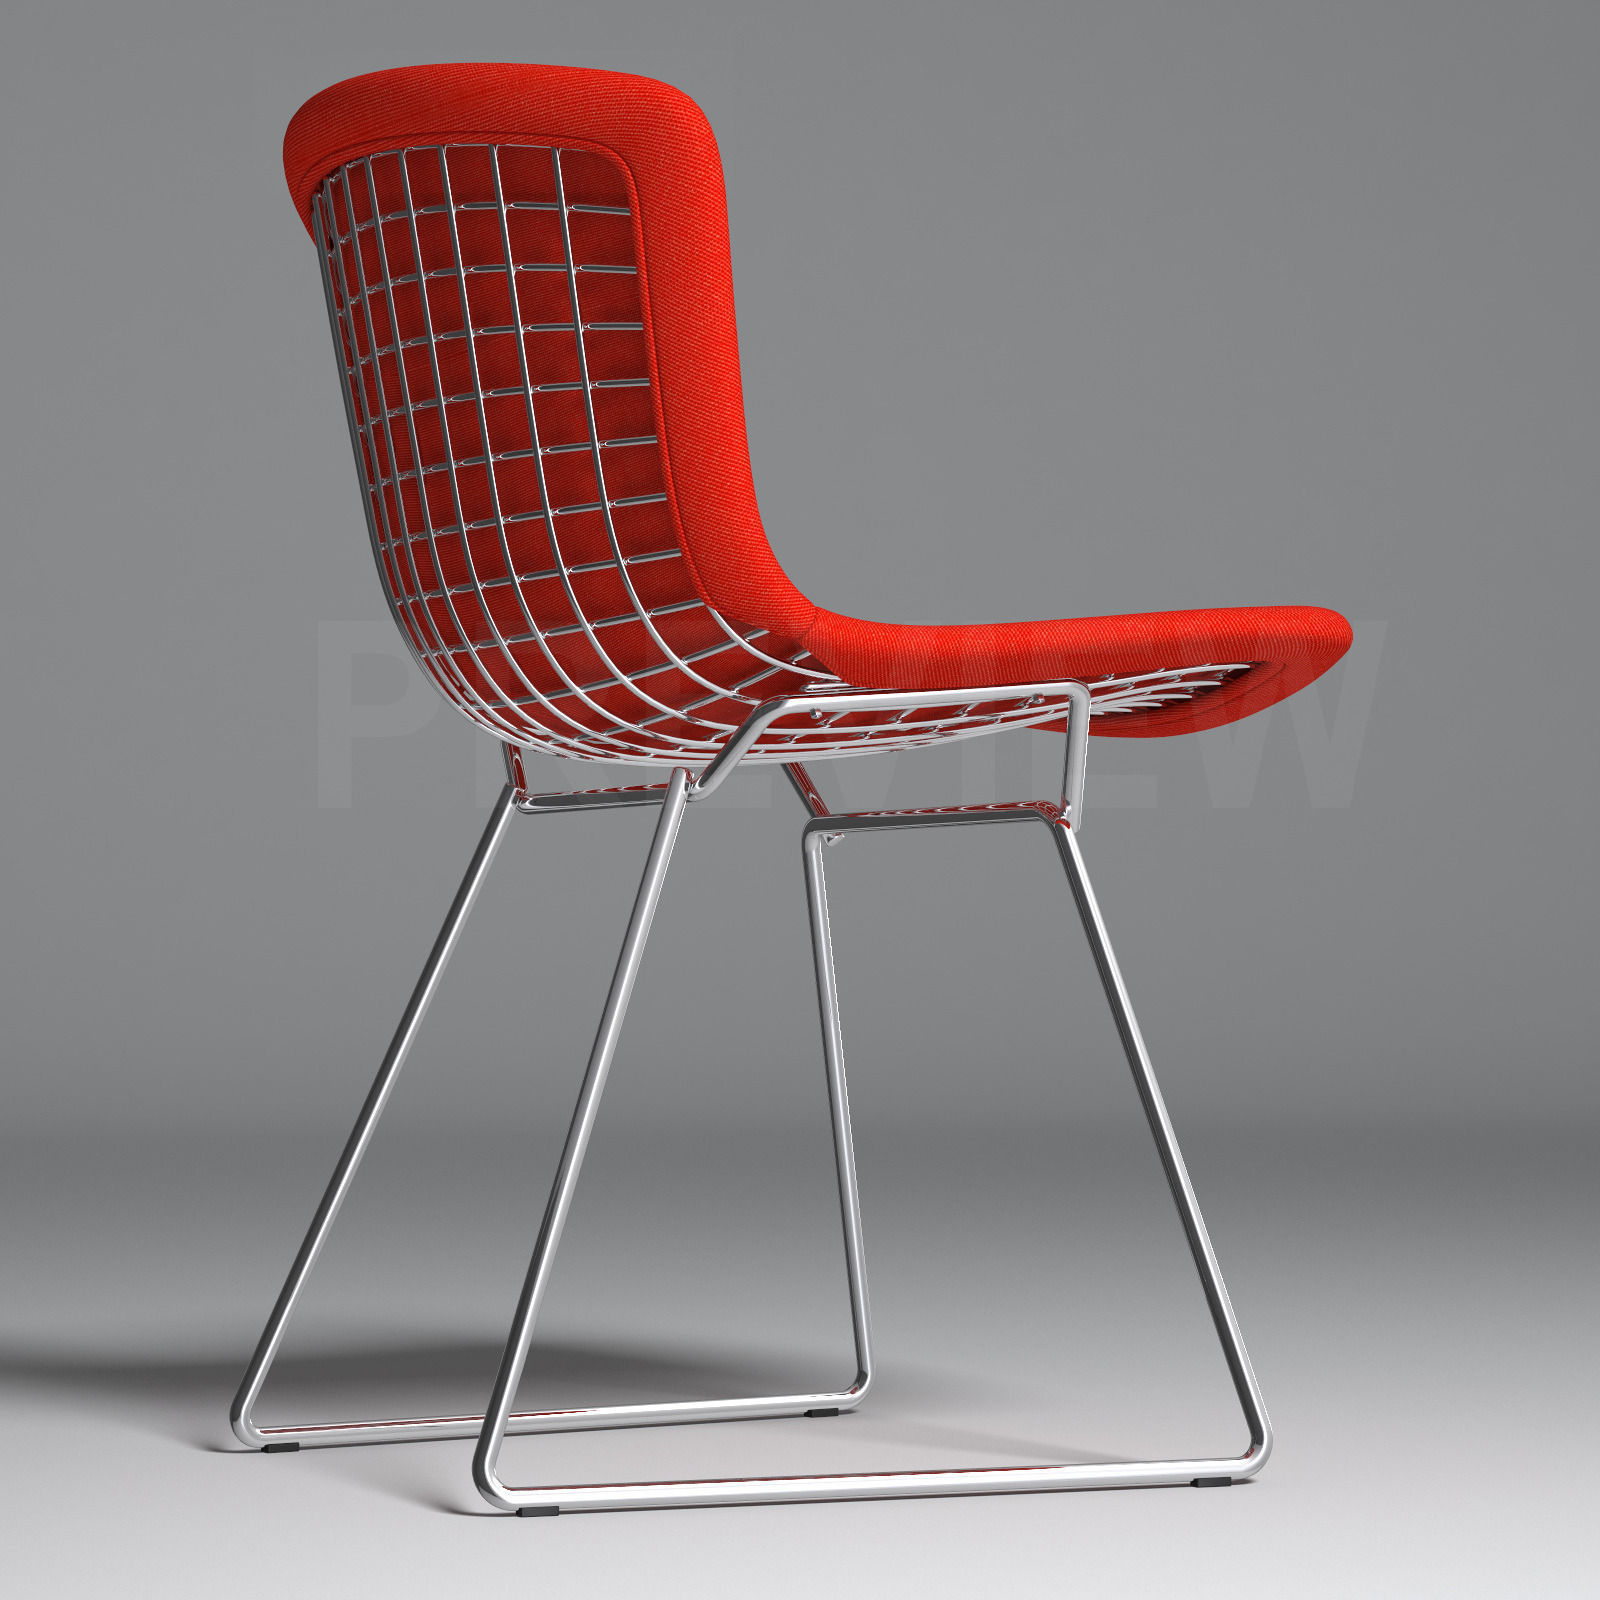 Admirable Bertoia Side Chair With Full Cover Knoll 3D Model Gmtry Best Dining Table And Chair Ideas Images Gmtryco